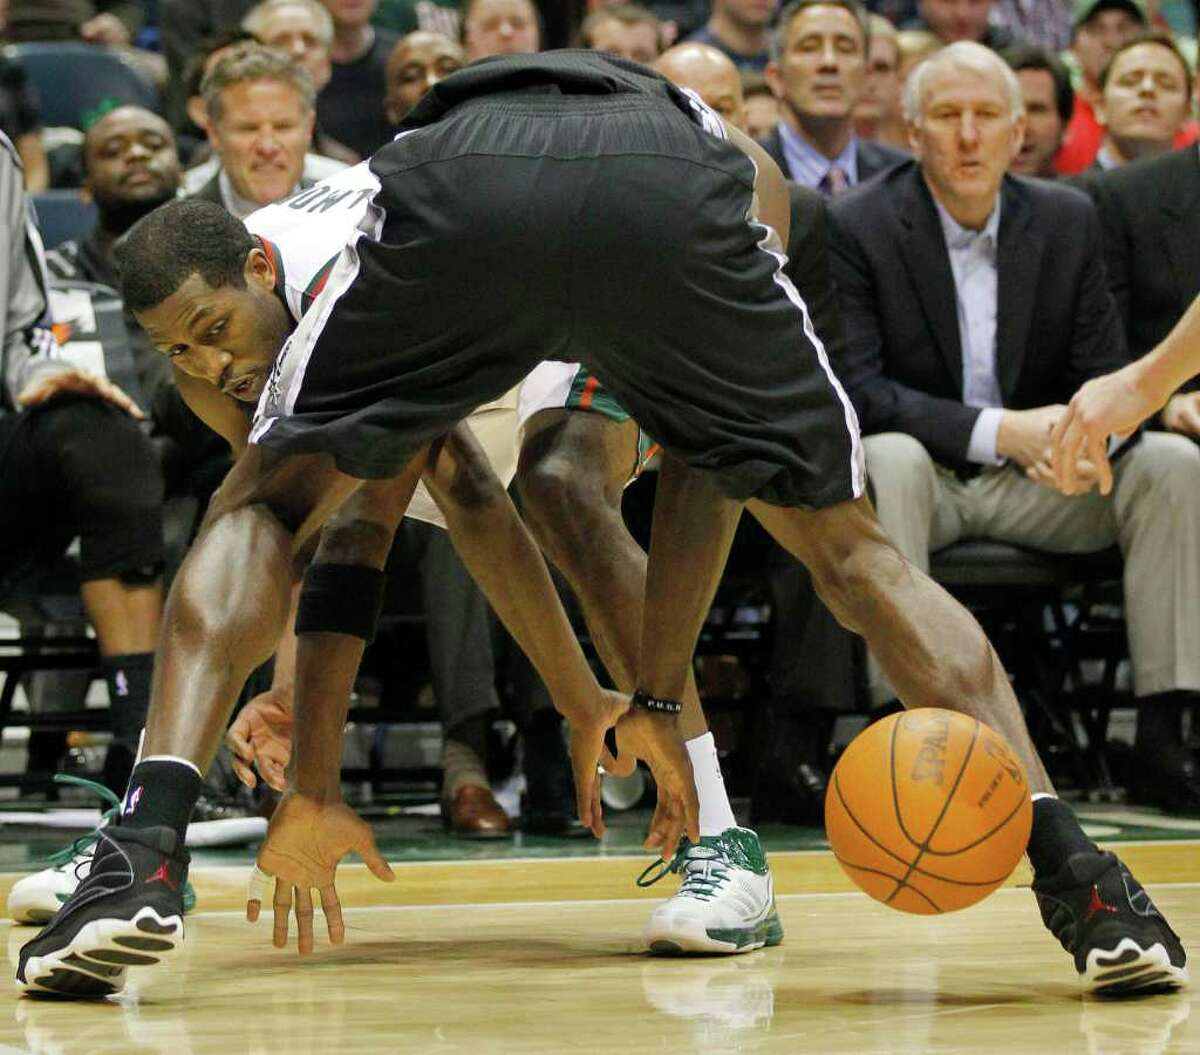 Milwaukee Bucks' John Salmons, left, reaches for a loose ball between the legs of San Antonio Spurs' Antonio McDyess in the second half of an NBA basketball game Wednesday, Jan. 12, 2011, in Milwaukee. San Antonio won 91-84.